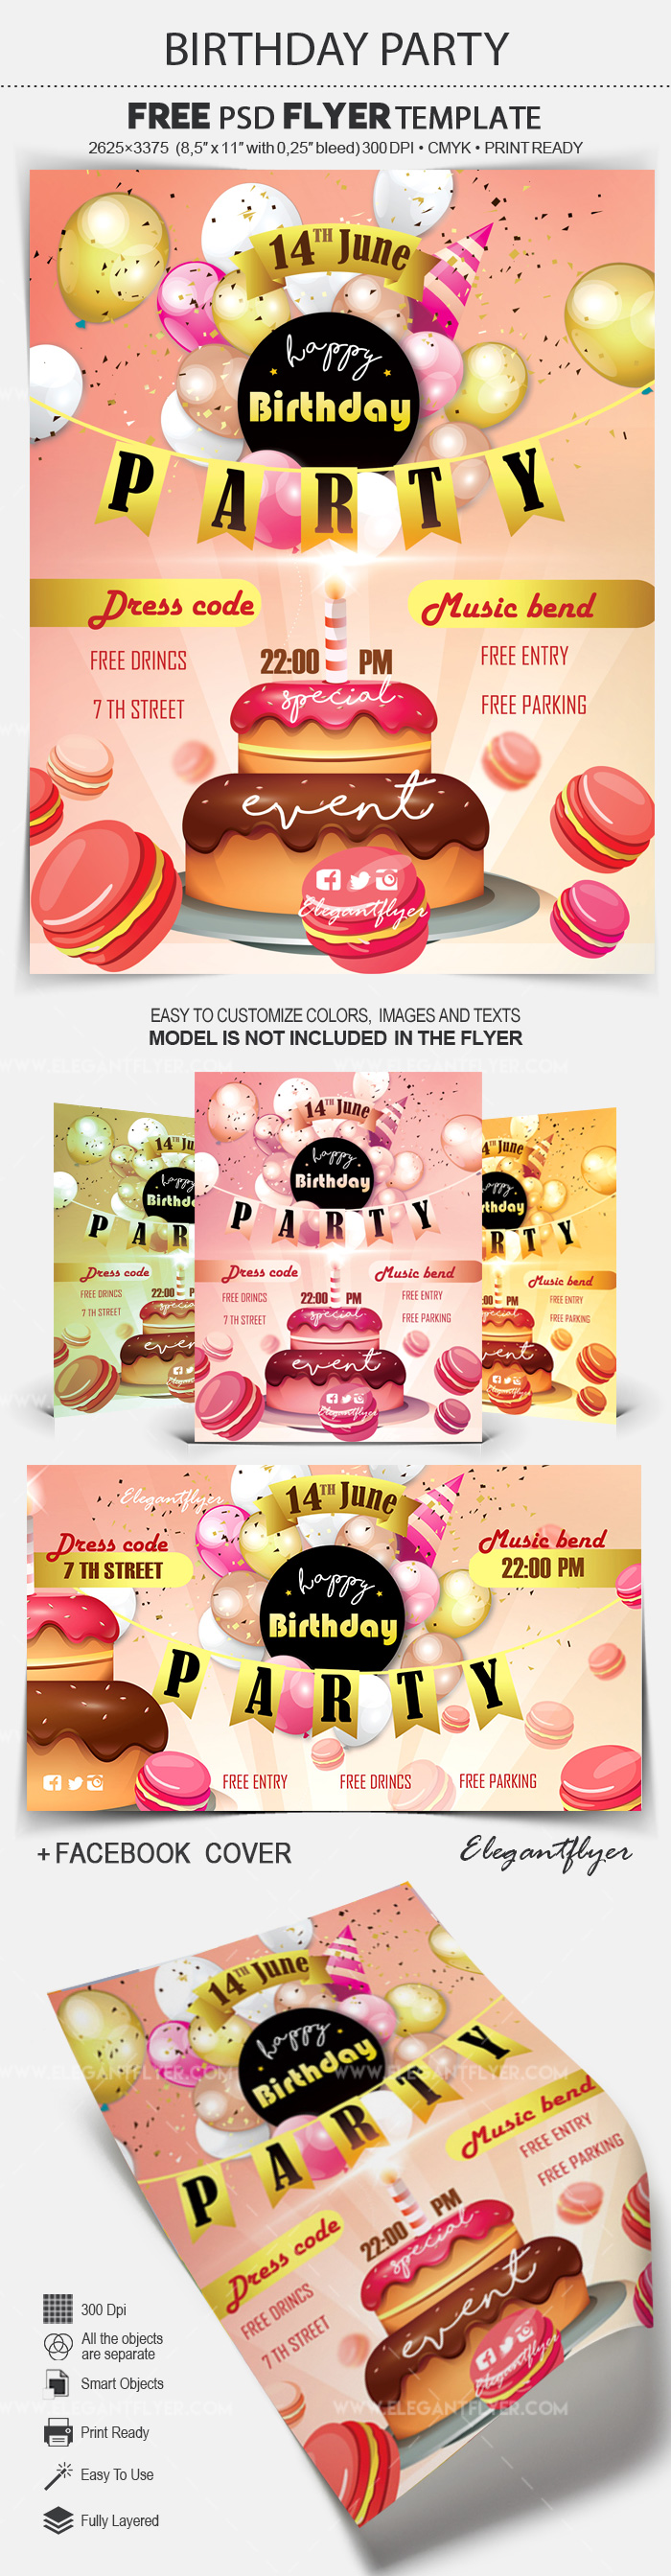 Birthday Party – Free Flyer PSD Template